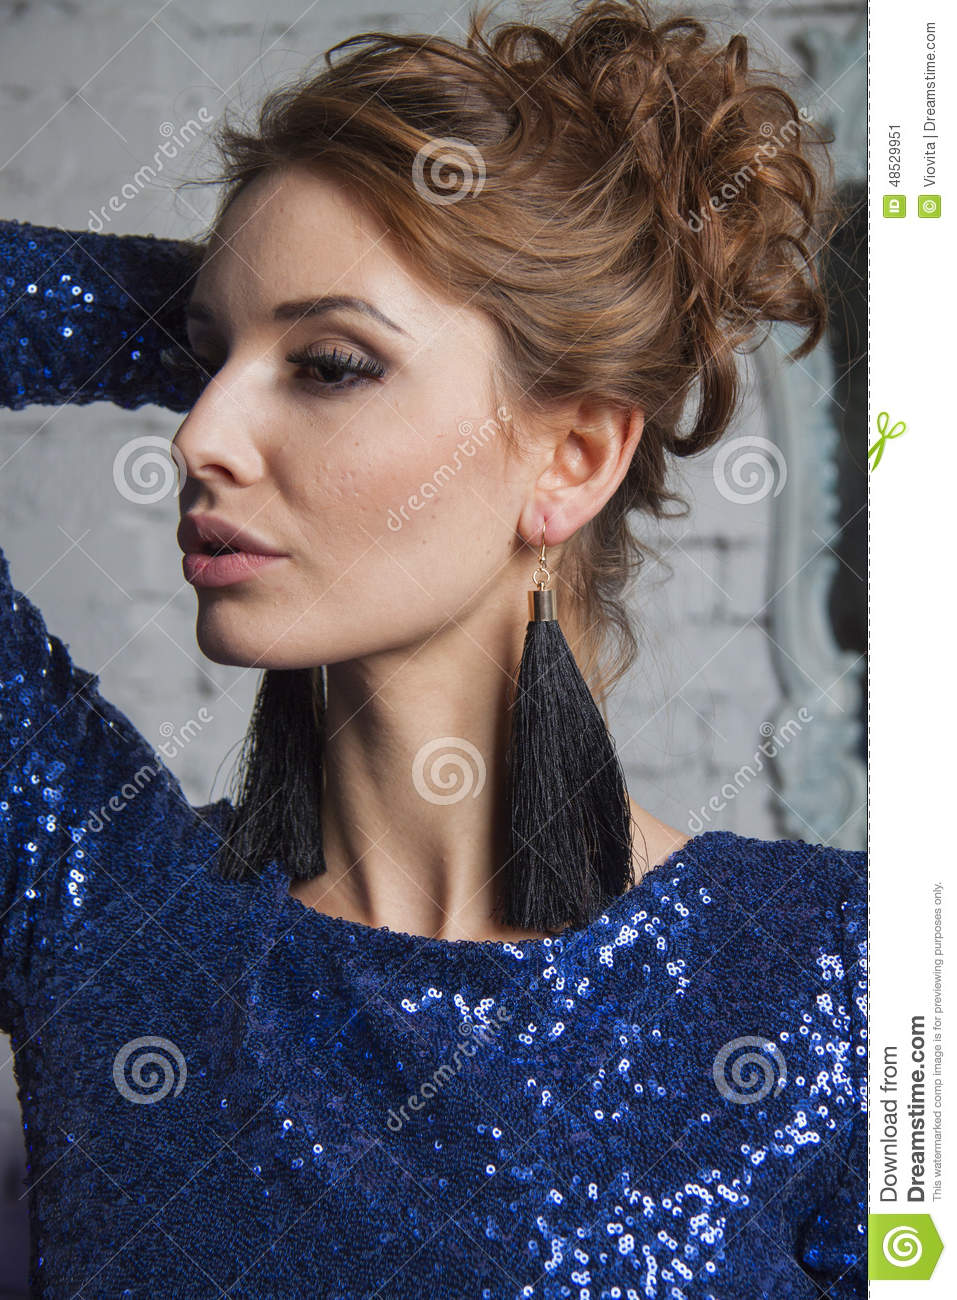 Girl In Blue Gown And Luxury Earrings Stock Image Image Of Beauty